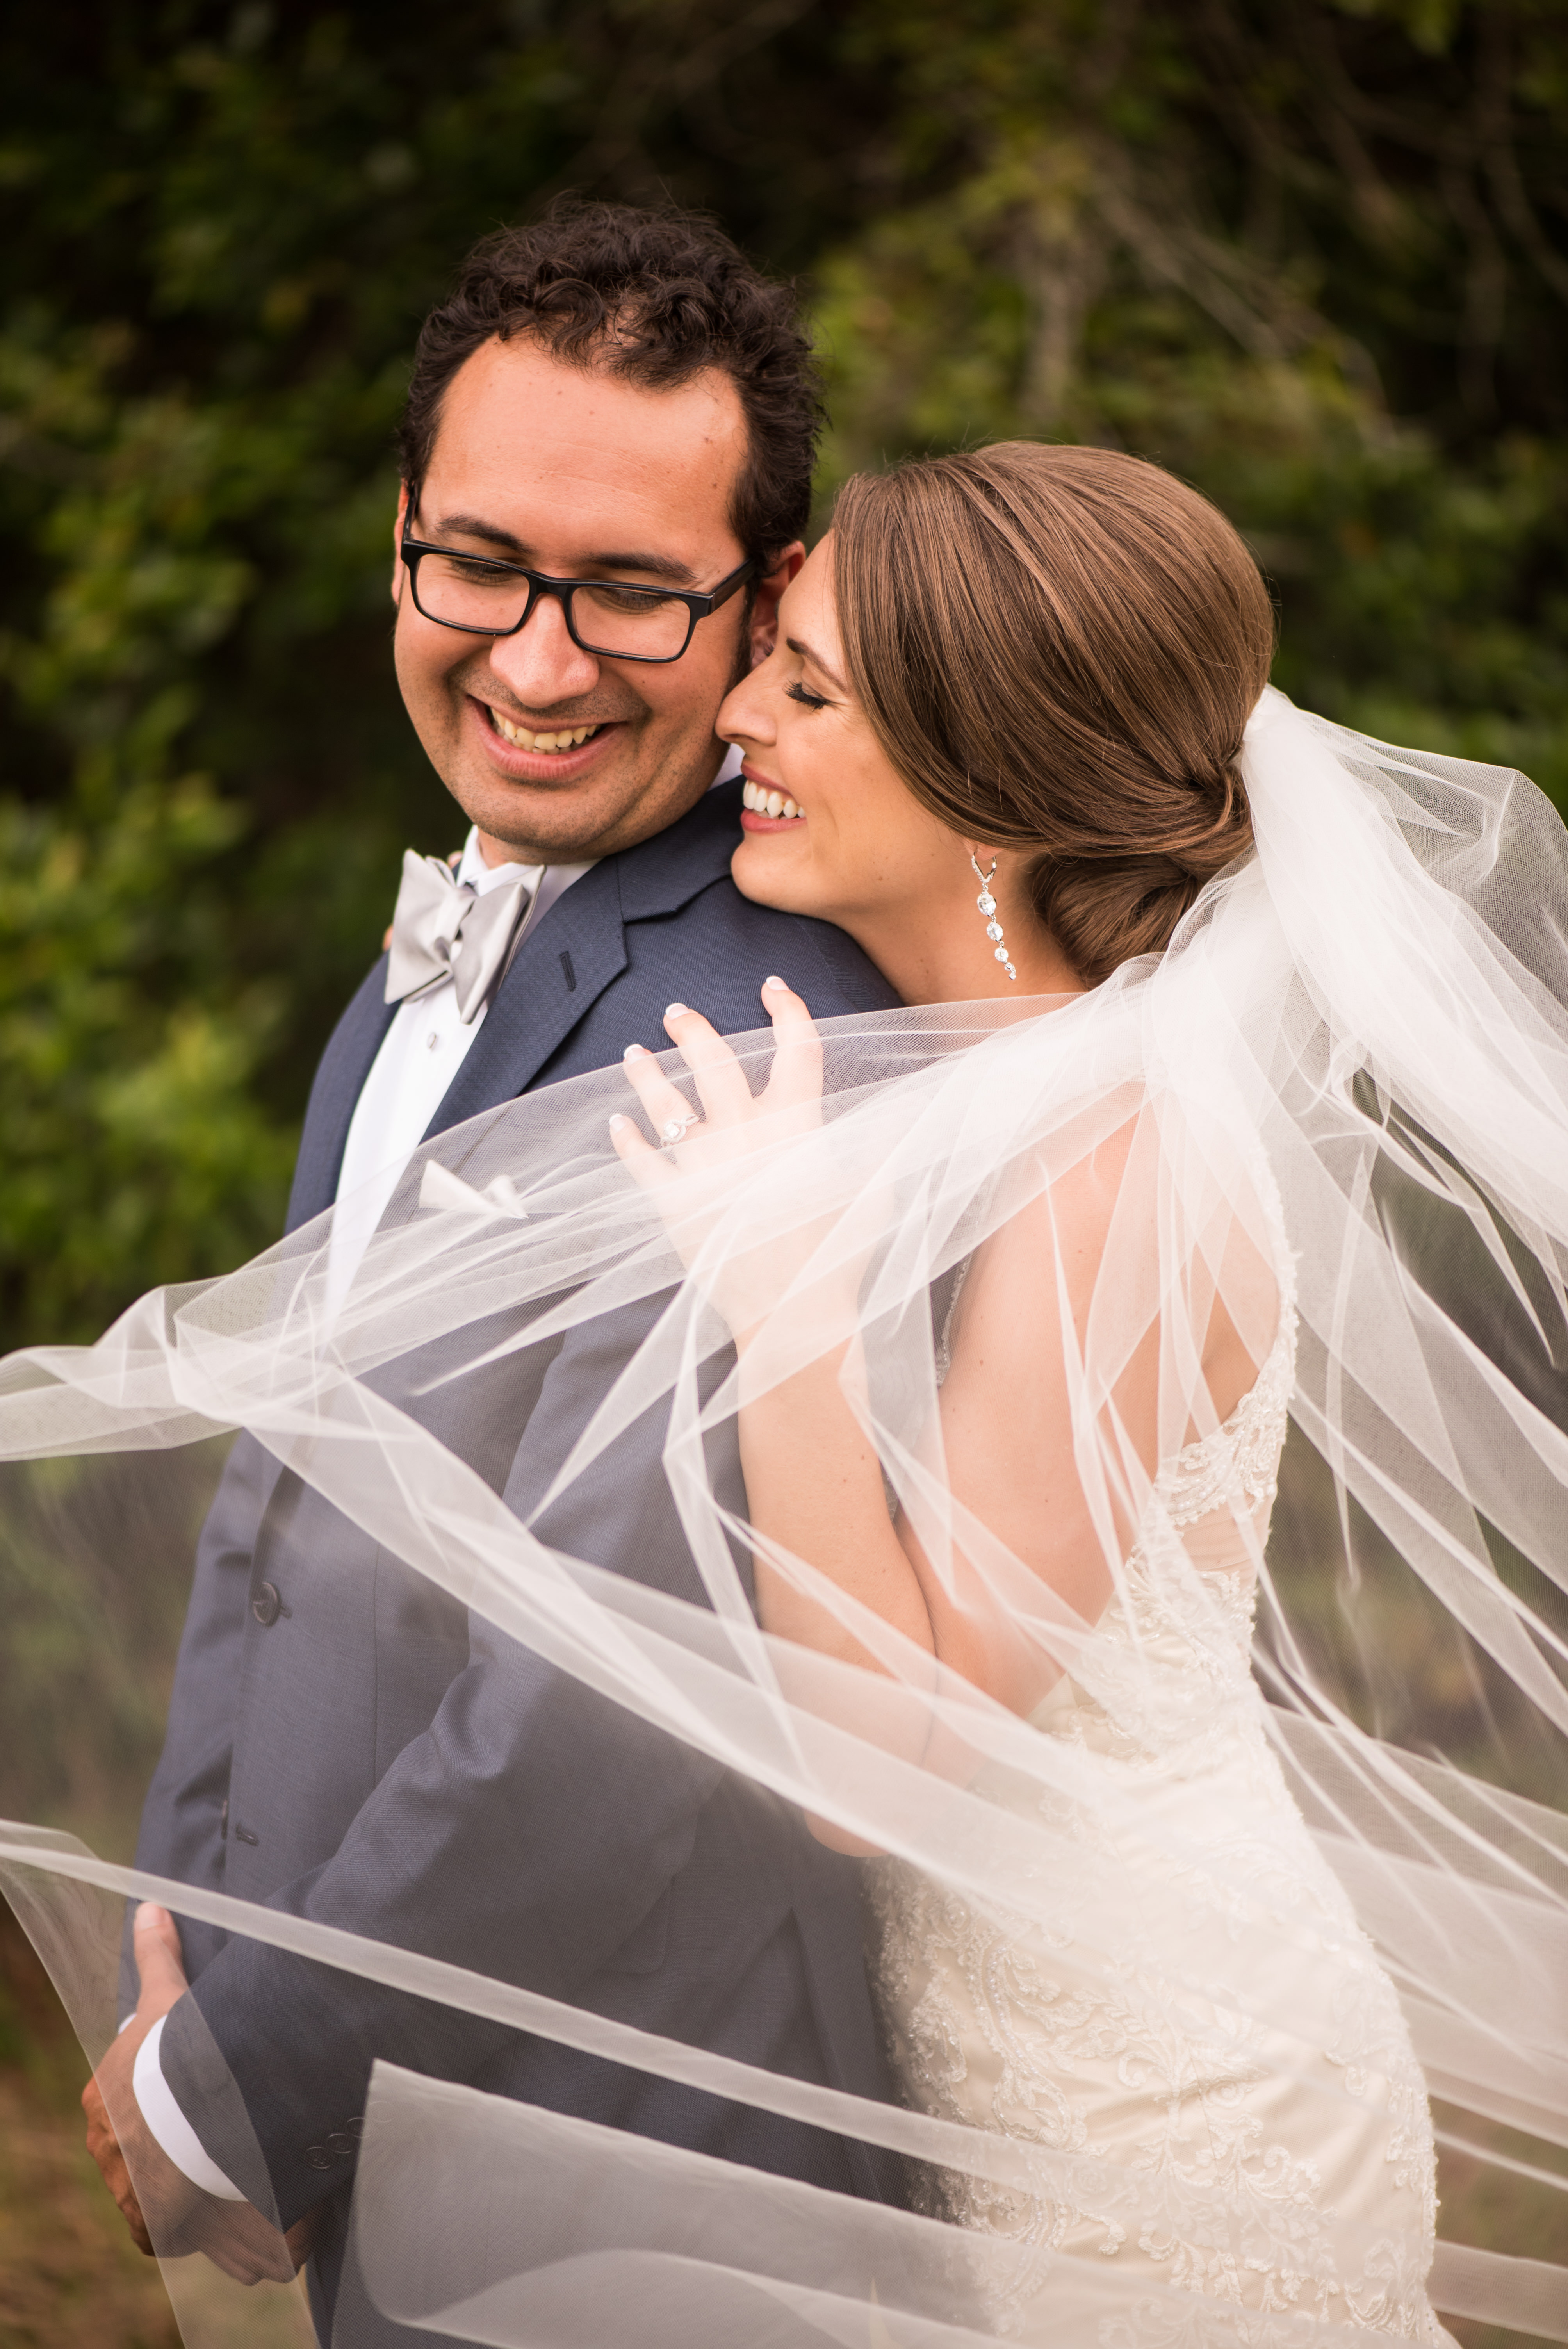 Williford Wedding- Married with Wanderlust Travel Bloggers